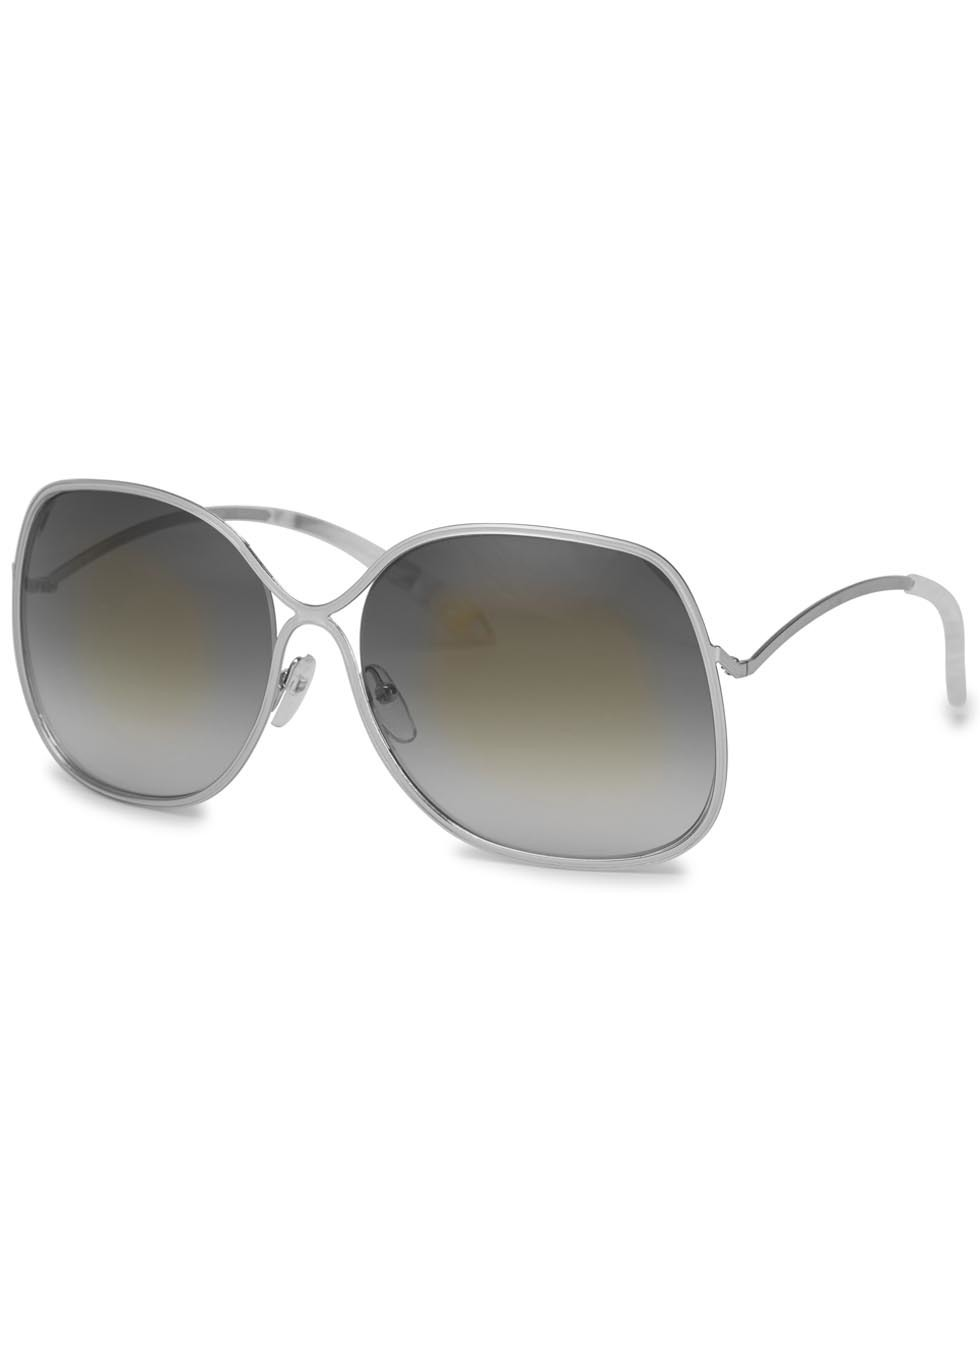 Enamel Wave Gold Tone Oversized Sunglasses - predominant colour: silver; occasions: casual, holiday; style: square; size: large; material: plastic/rubber; pattern: plain; finish: plain; season: a/w 2015; wardrobe: basic